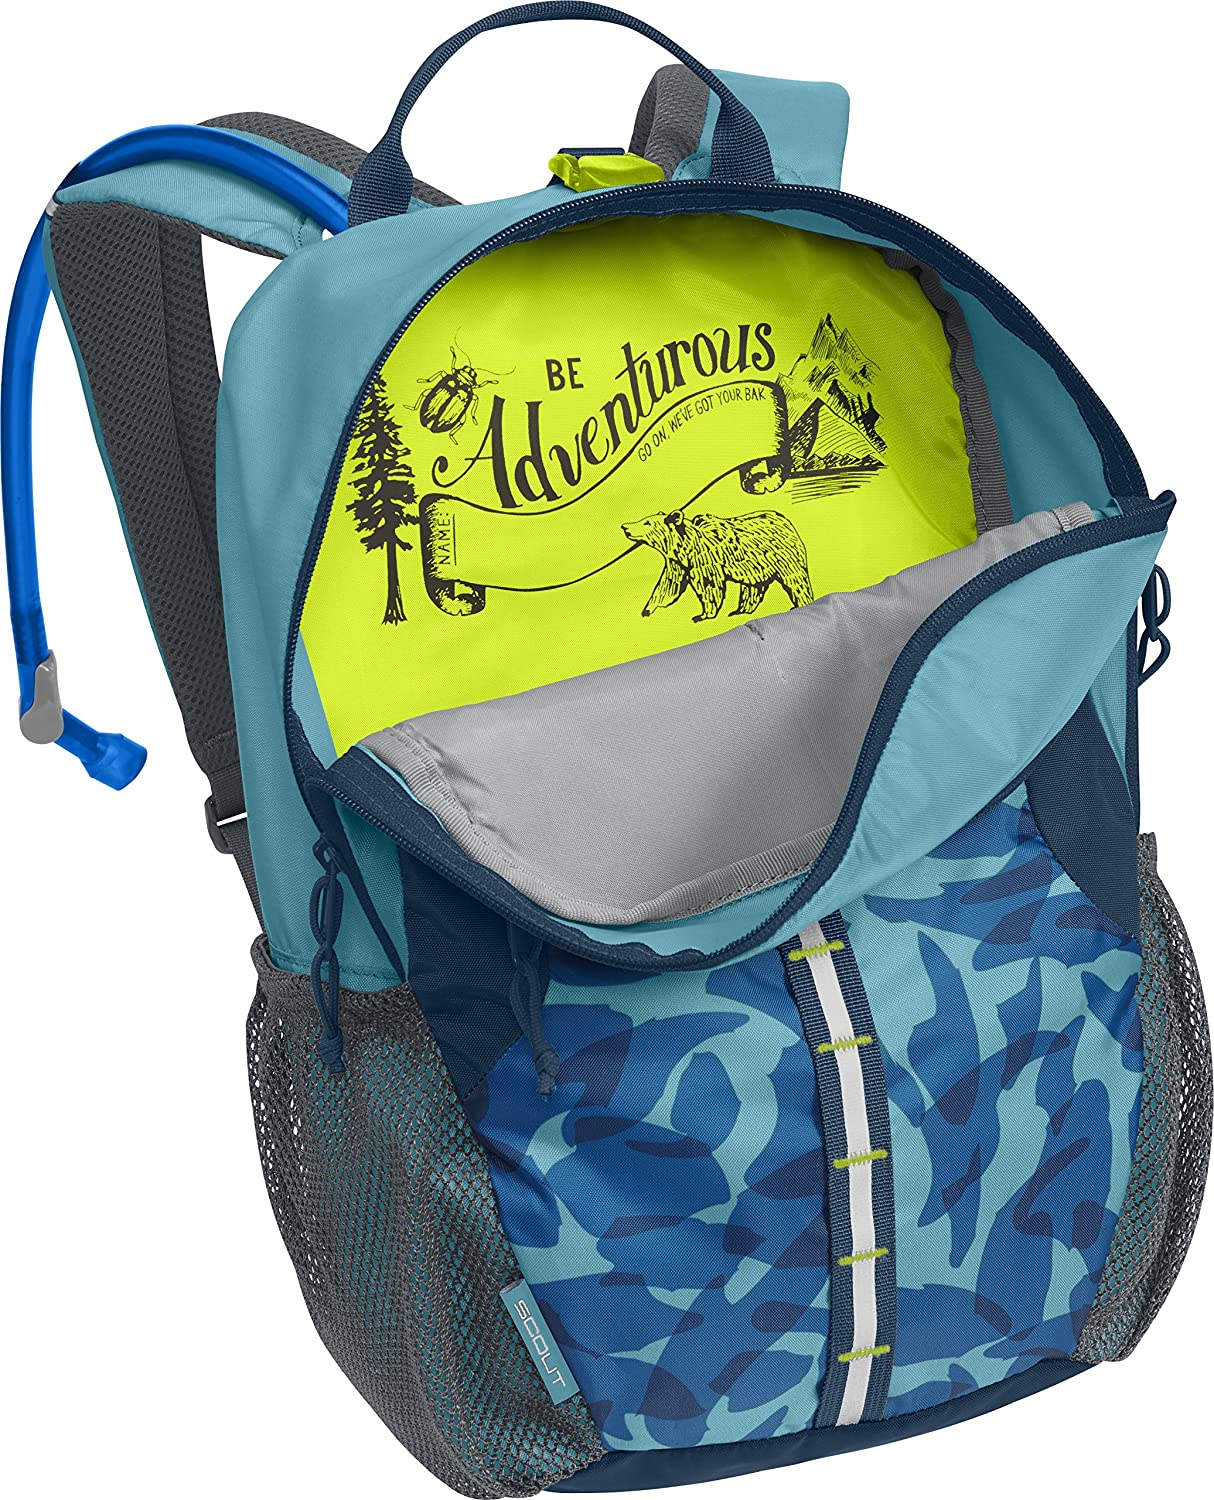 50oz CamelBak 2018 Kids Scout Hydration Pack